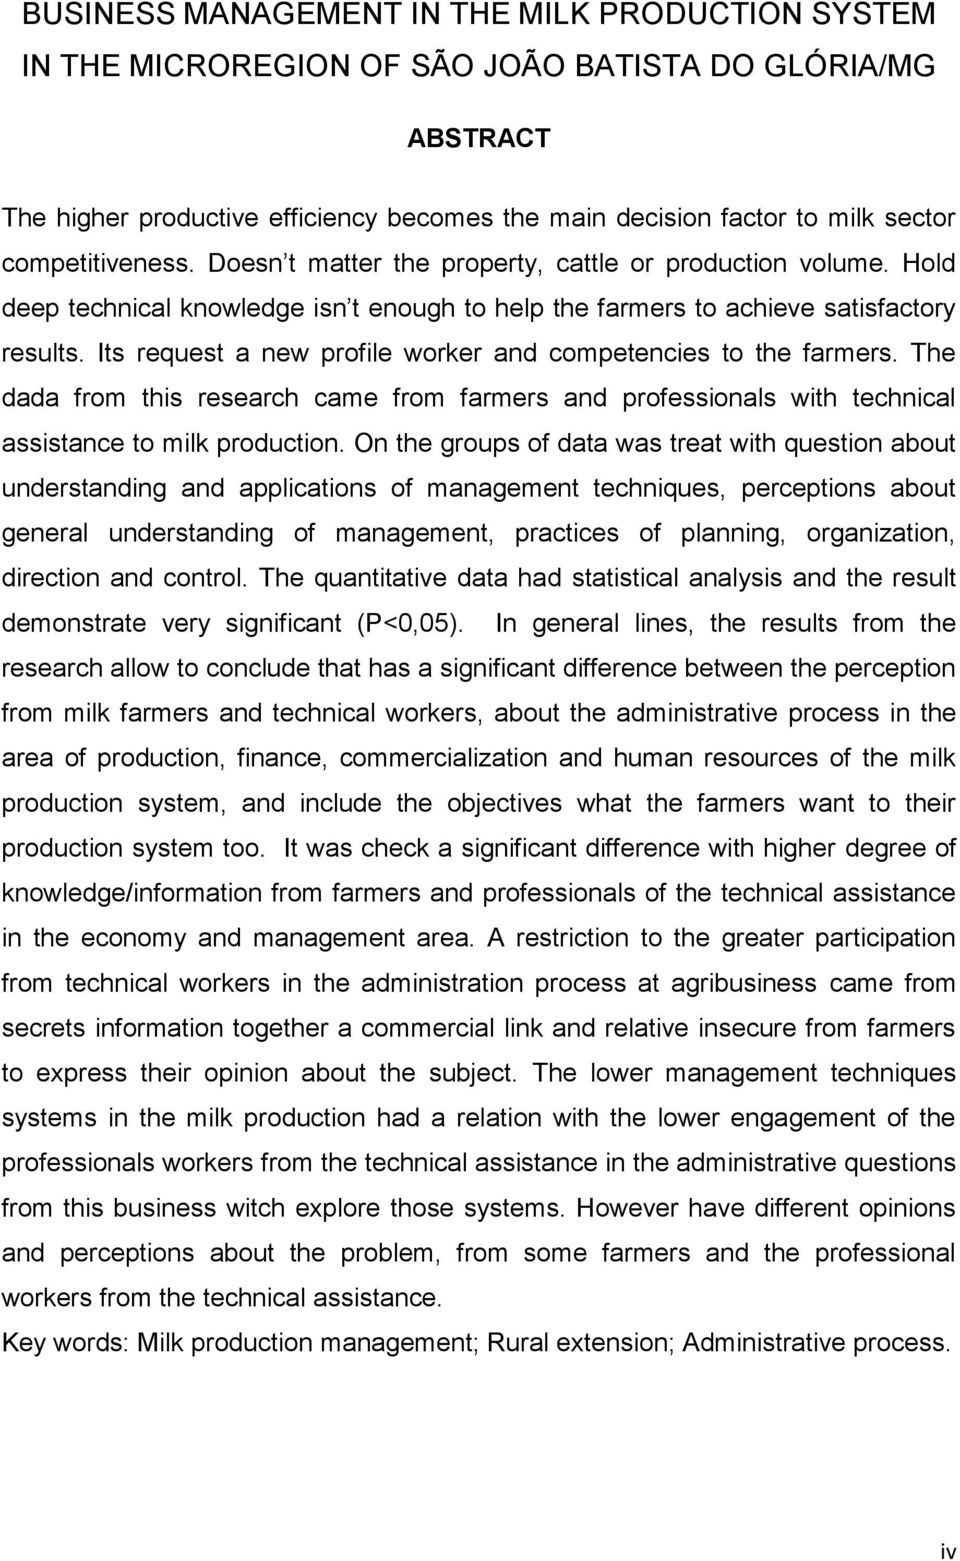 Its request a new profile worker and competencies to the farmers. The dada from this research came from farmers and professionals with technical assistance to milk production.